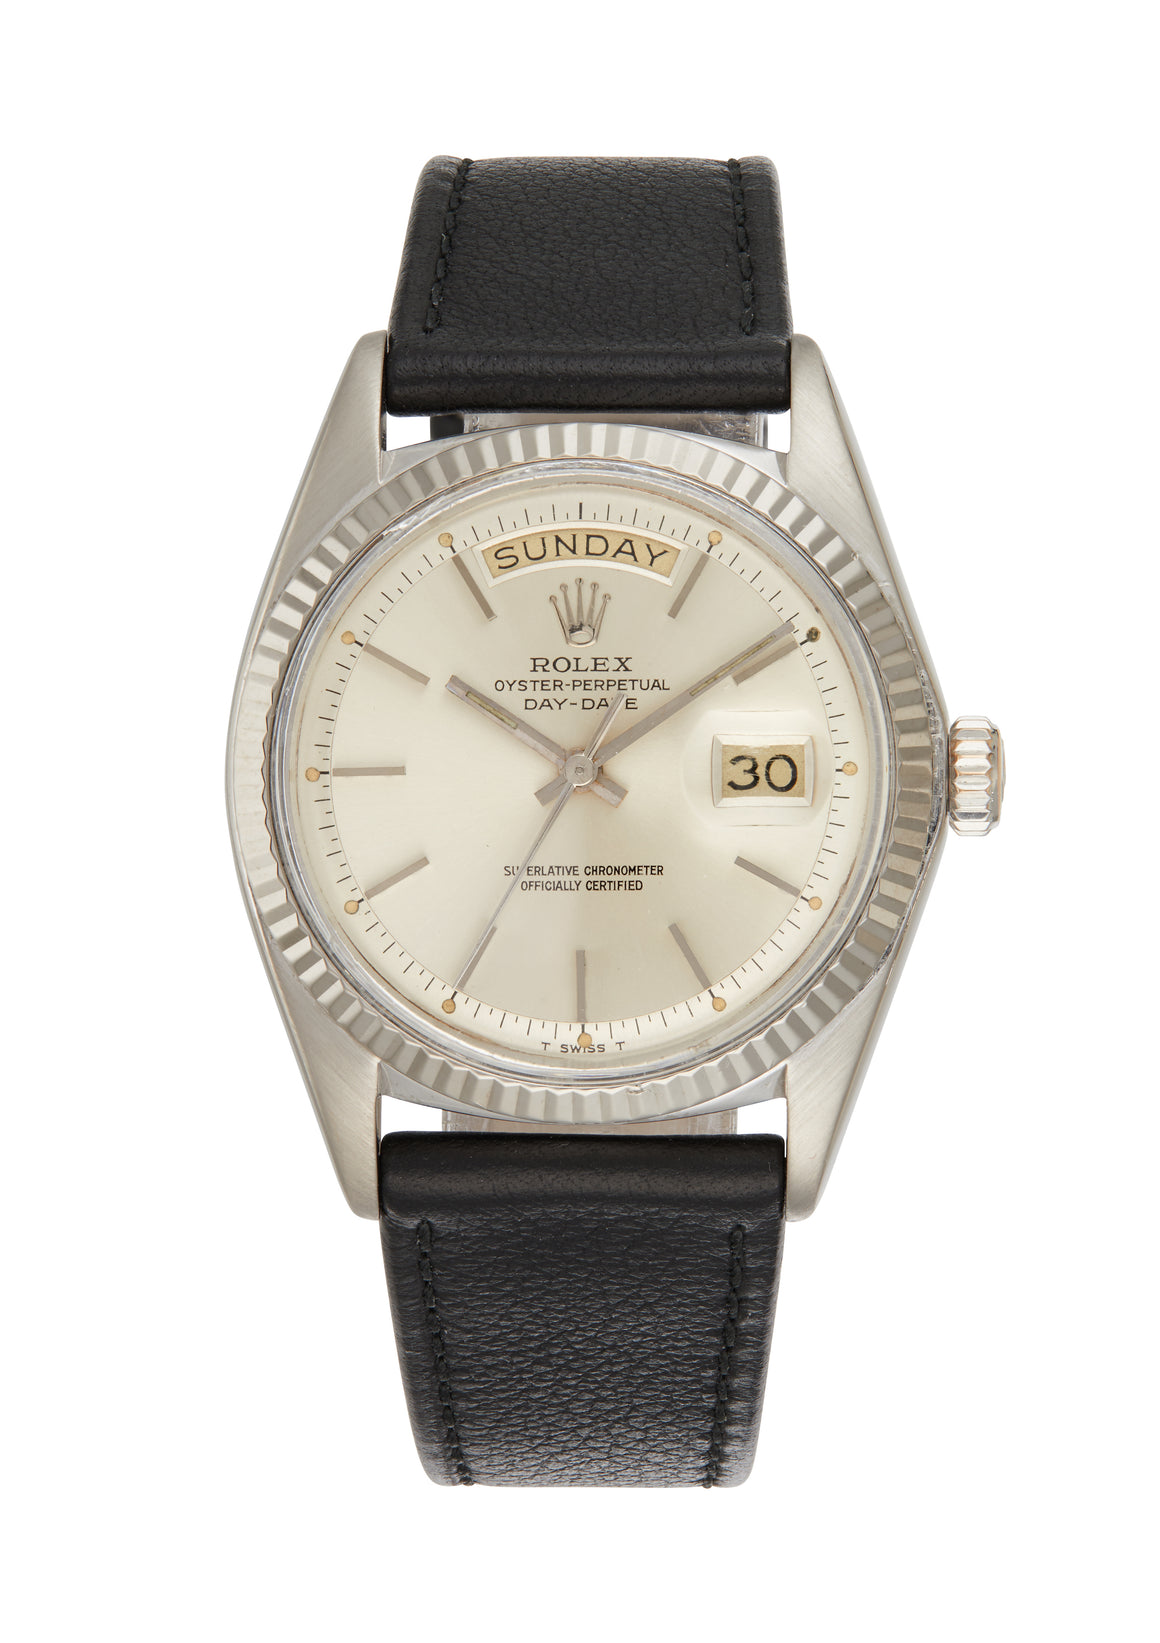 Rolex 18k White Gold Day-Date Watch Silver Step Dial Ref: 1803